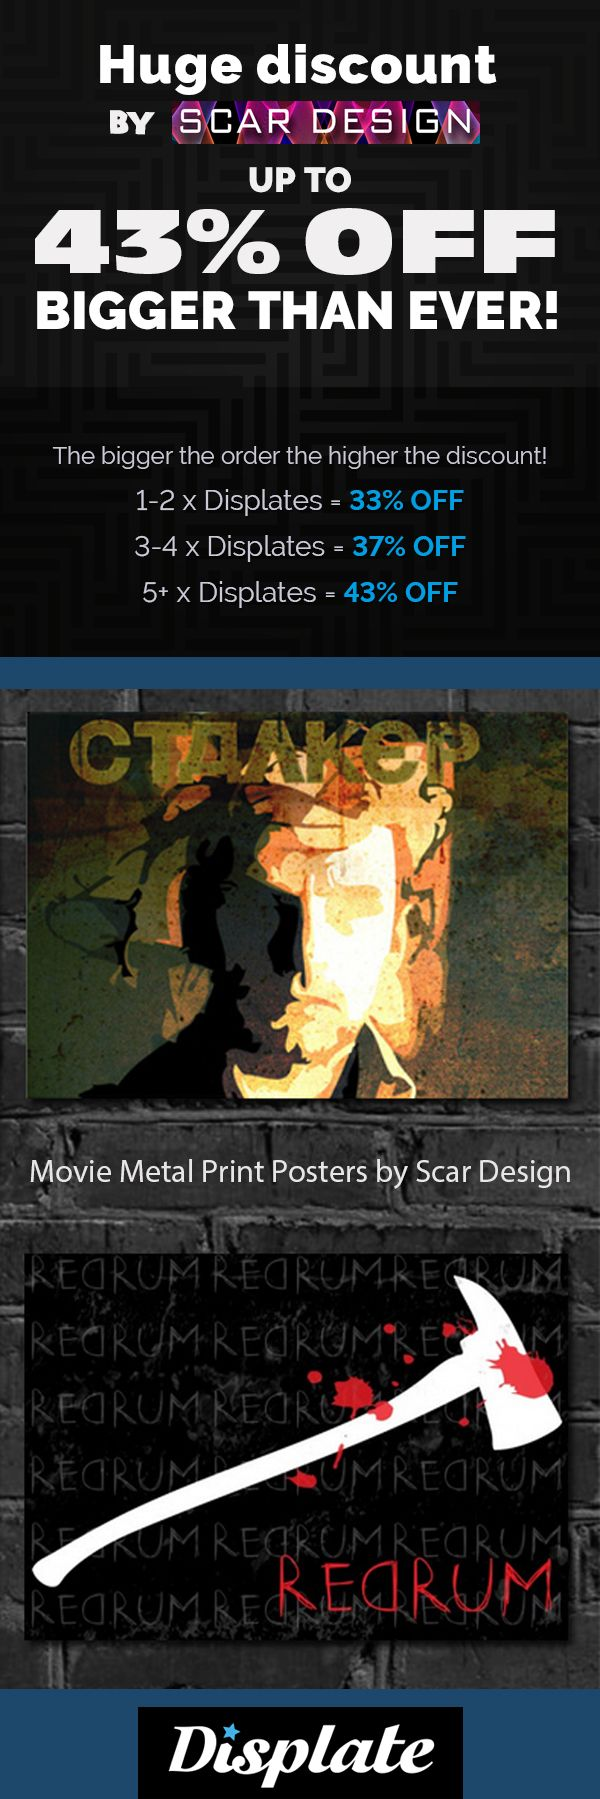 43% OFF METAL PRINT POSTERS! Movie & Gaming Posters on Metal Prints. Stalker movie Poster, Shining movie Poster by Scar Design #poster #displate #homedecor #style #family #tarkovsky #tarkovskymovie #stalkermovie #theshining #theshiningmovie #movieposter #onlineshopping #shopping #sales #discount #save #movies #film #cinema #bookposter #art #thanksgivinggifts #christmasgifts #buymovieposters